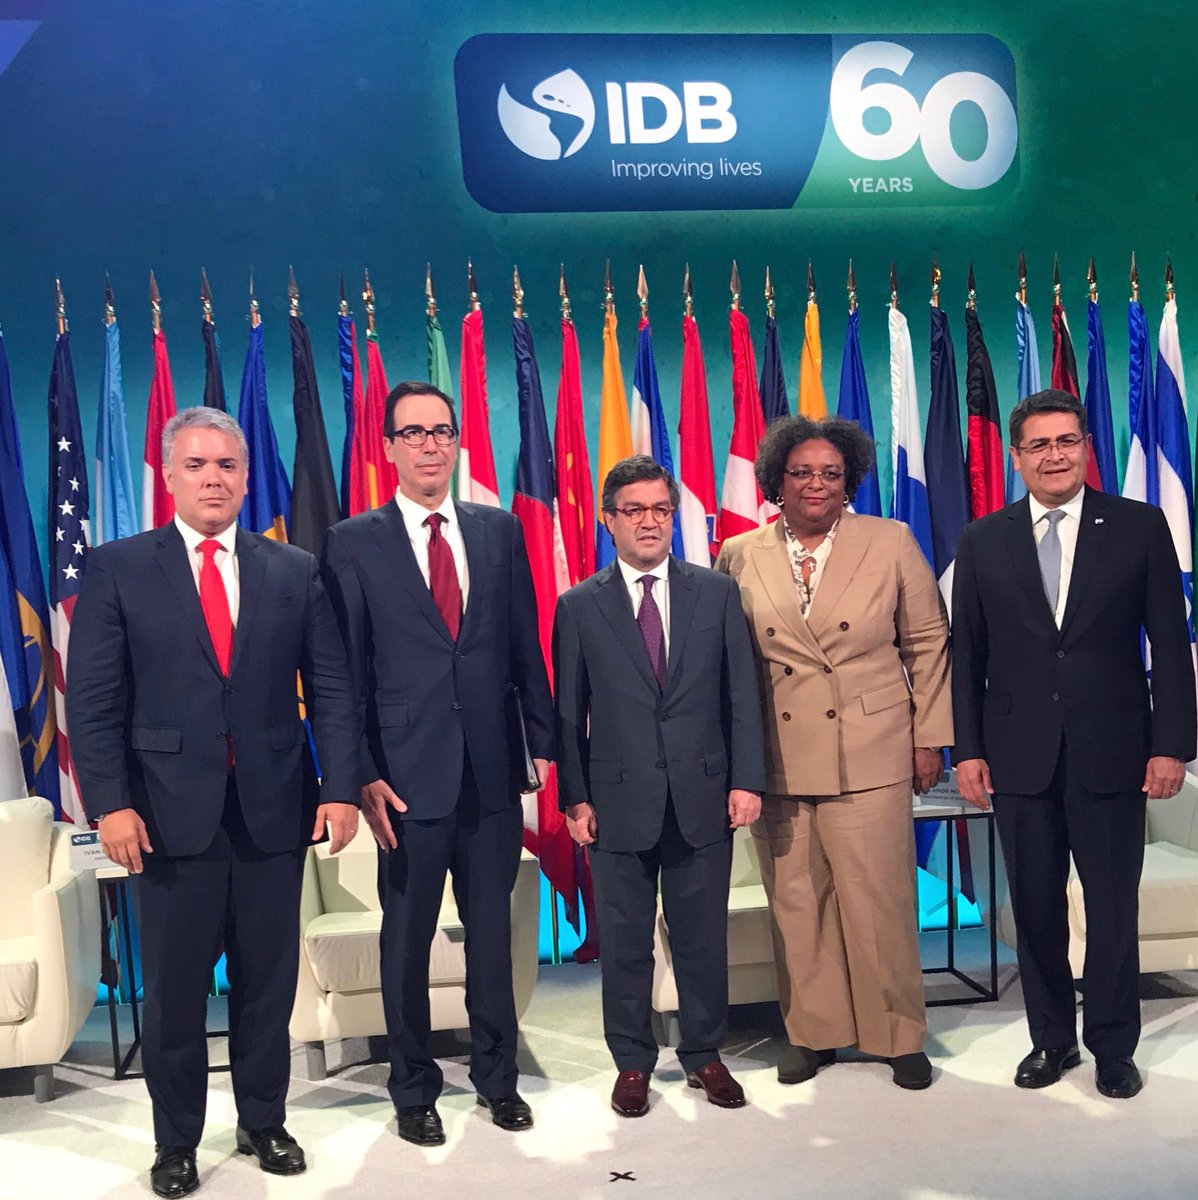 Joined @the_IDB with the President of Columbia @IvanDuque, IDB President @MorenoBID, the Prime Minister of Barbados @MiaAmorMottley, and the President of Honduras @JuanOrlandoH to celebrate 60 years of working together to improve lives in Latin American and the Caribbean.